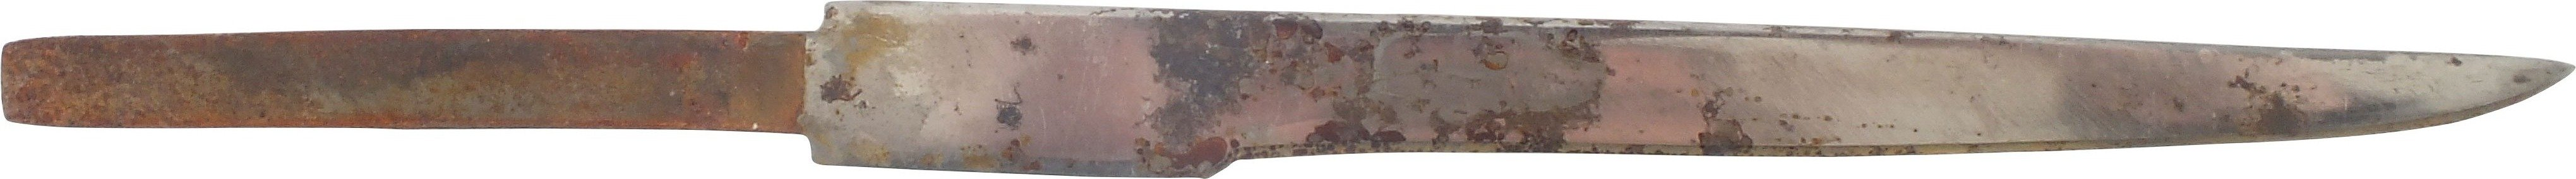 JAPANESE SIDE KNIFE KOZUKA - Fagan Arms